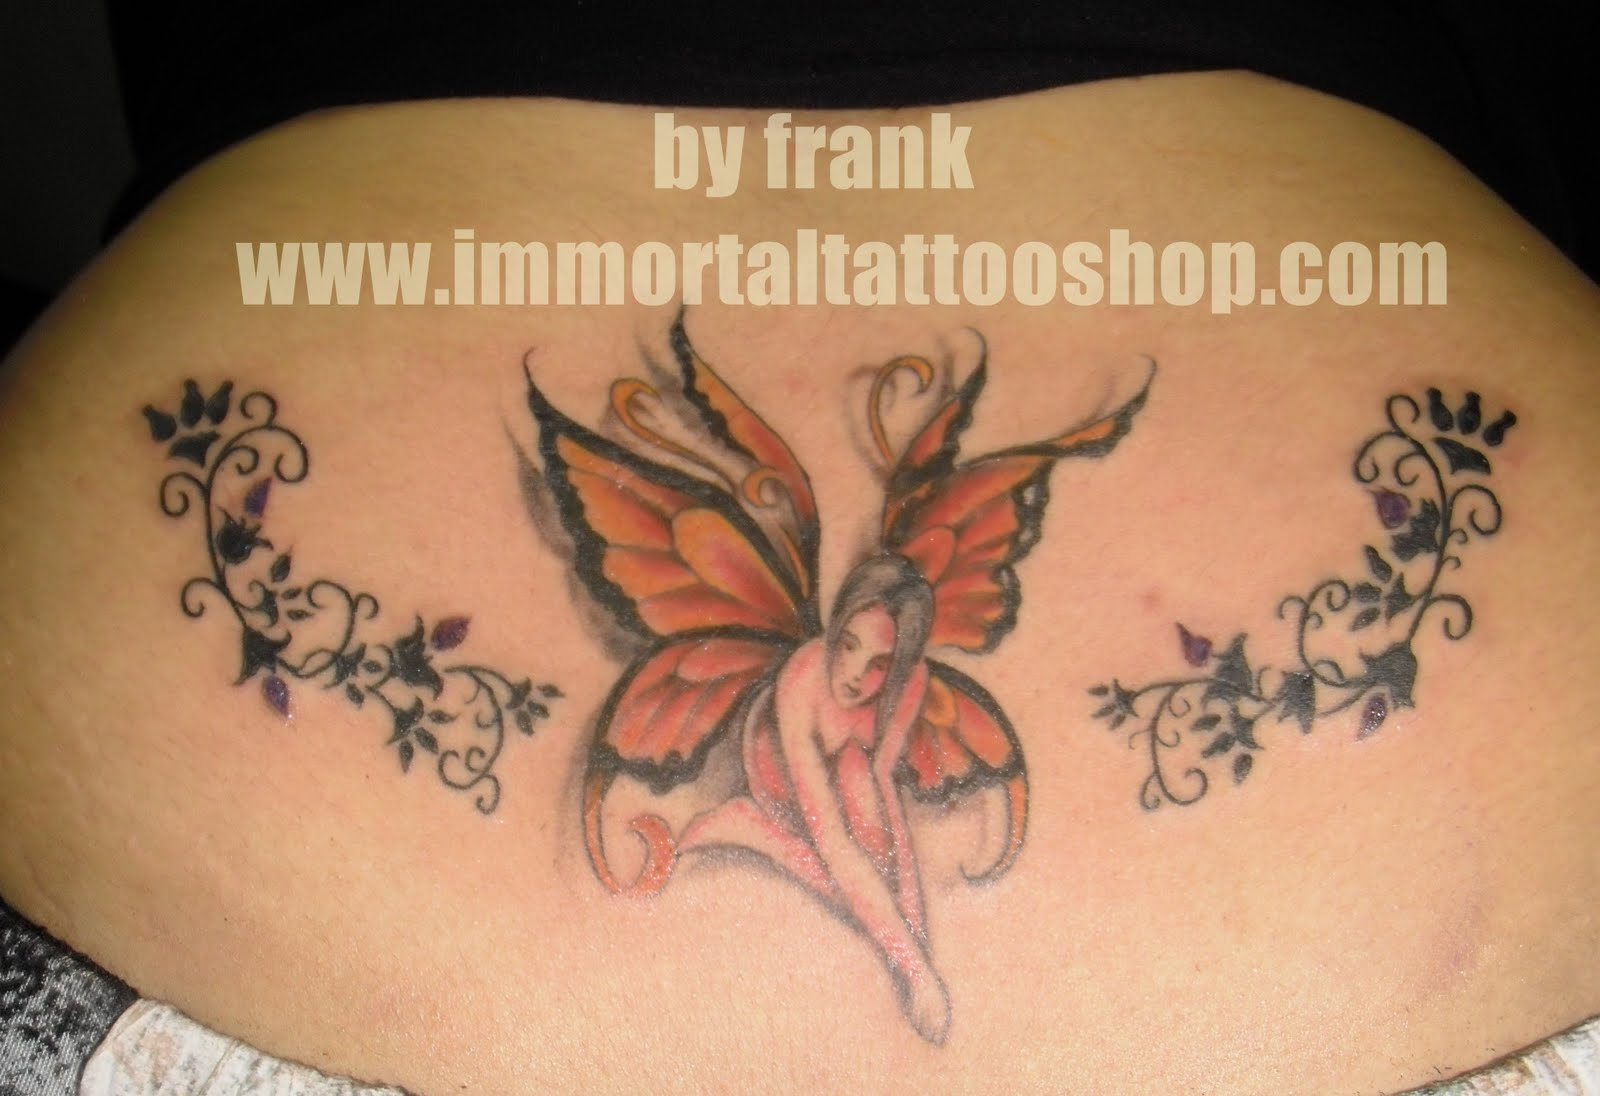 Next 3d TATTOO by frank